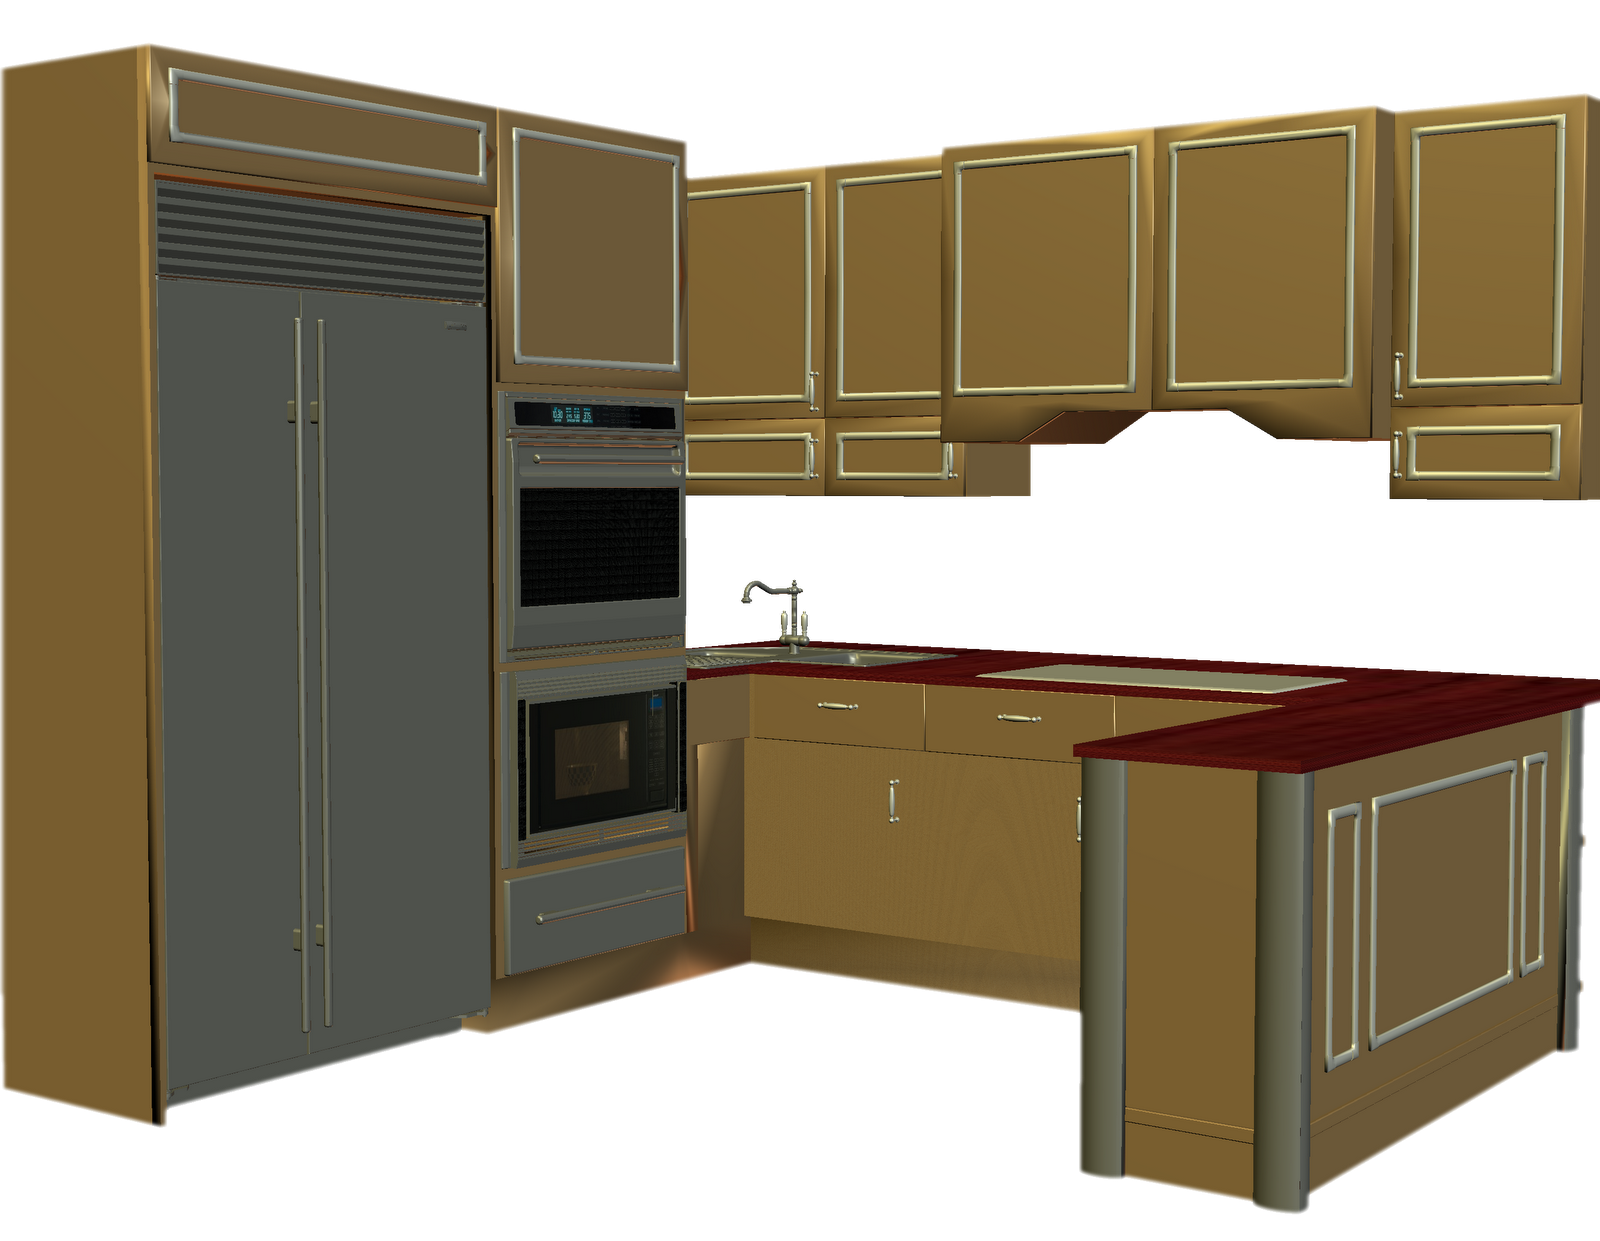 Furniture clipart kitchen room Cliparting Clip 2 com clipart